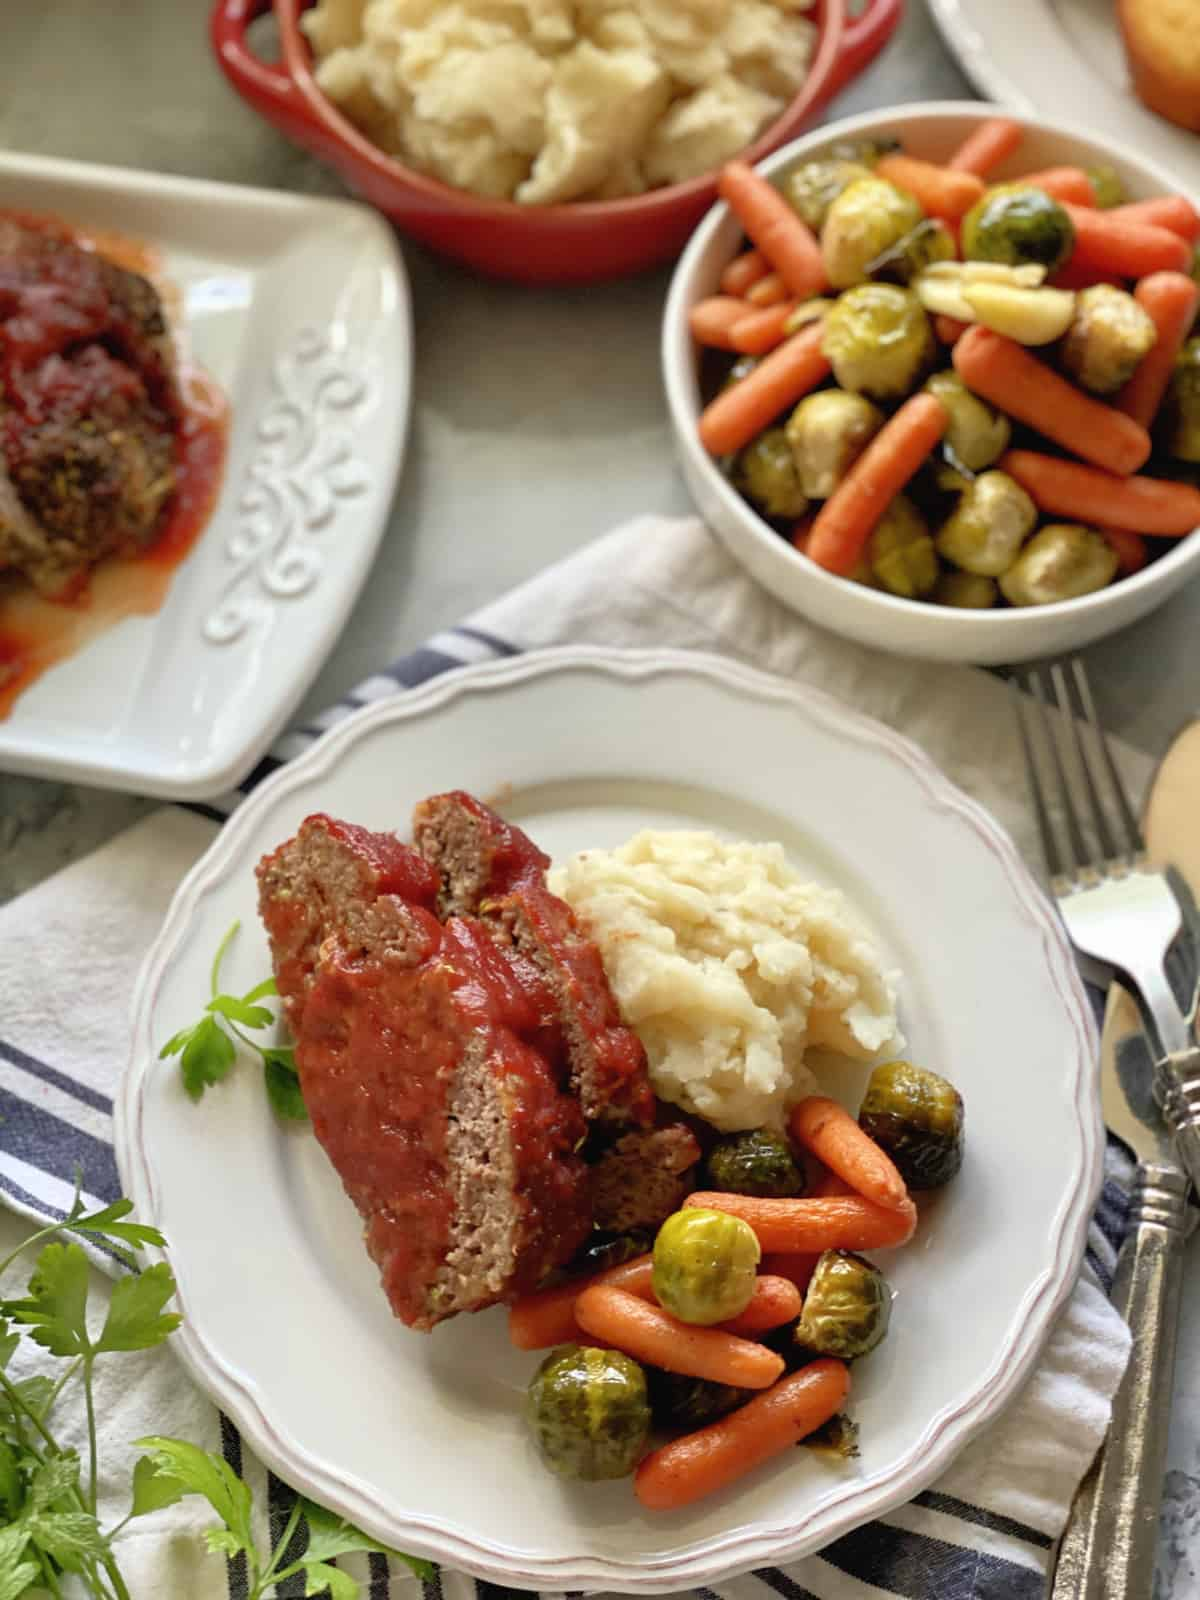 Top view of a plate of meatloaf, mashed potatoes, and veggies, with sides around it.